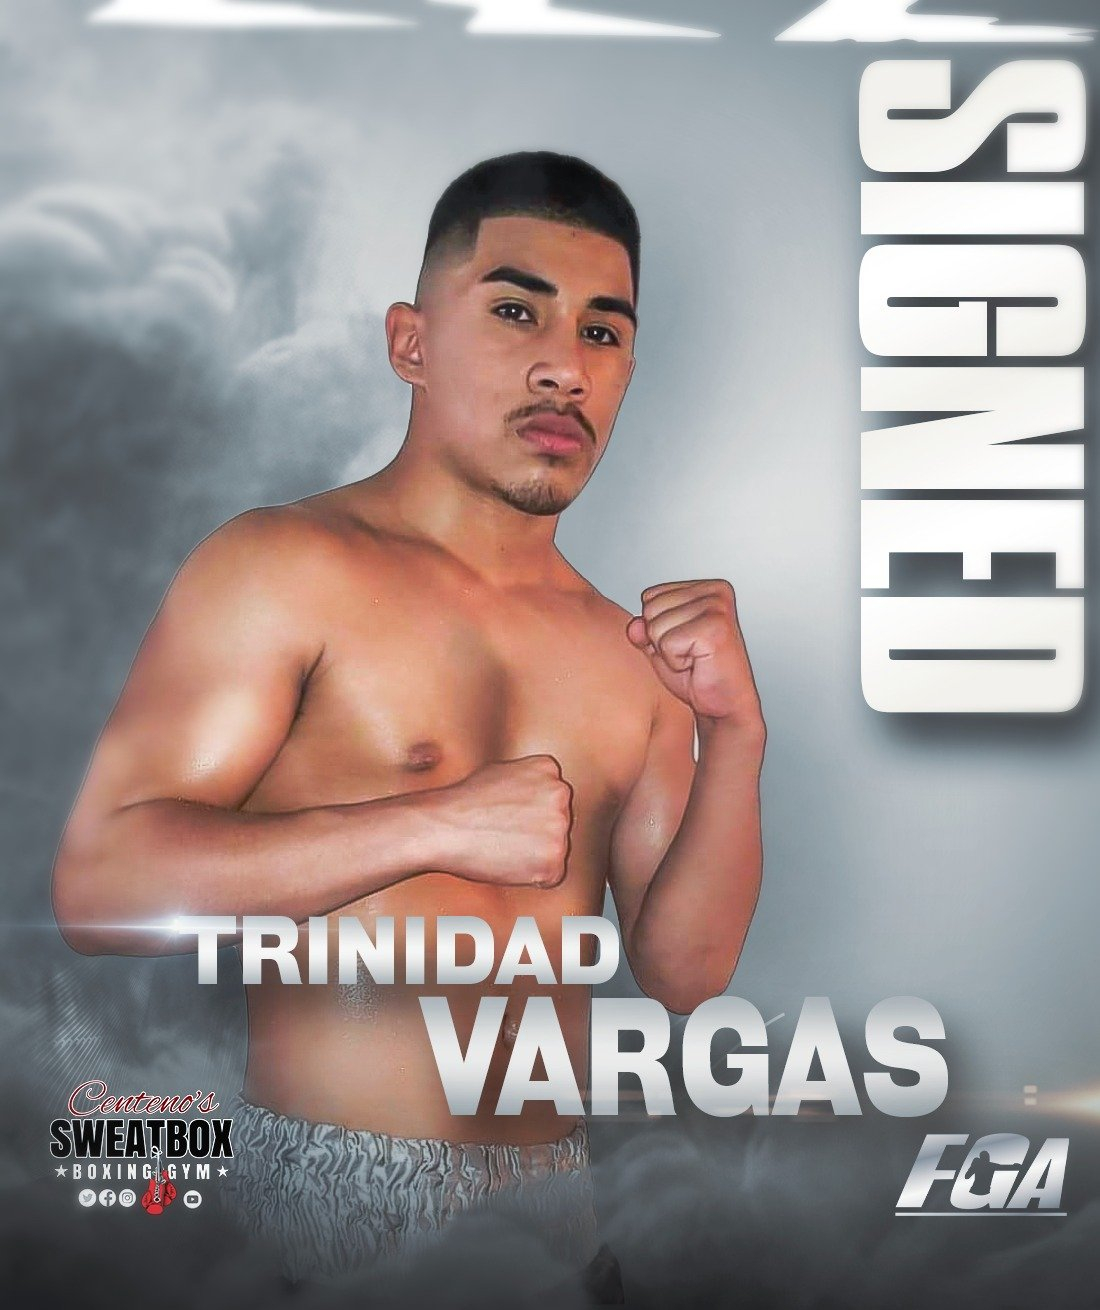 Peter Kahn, Trinidad Vargas - Renowned boxing manager and 2019 BWAA Cus D'Amato Manager of the Year Award Nominee, Peter Kahn continues his hot streak adding U.S. Amateur Standout Trinidad Vargas to his vast stable of world class boxers.